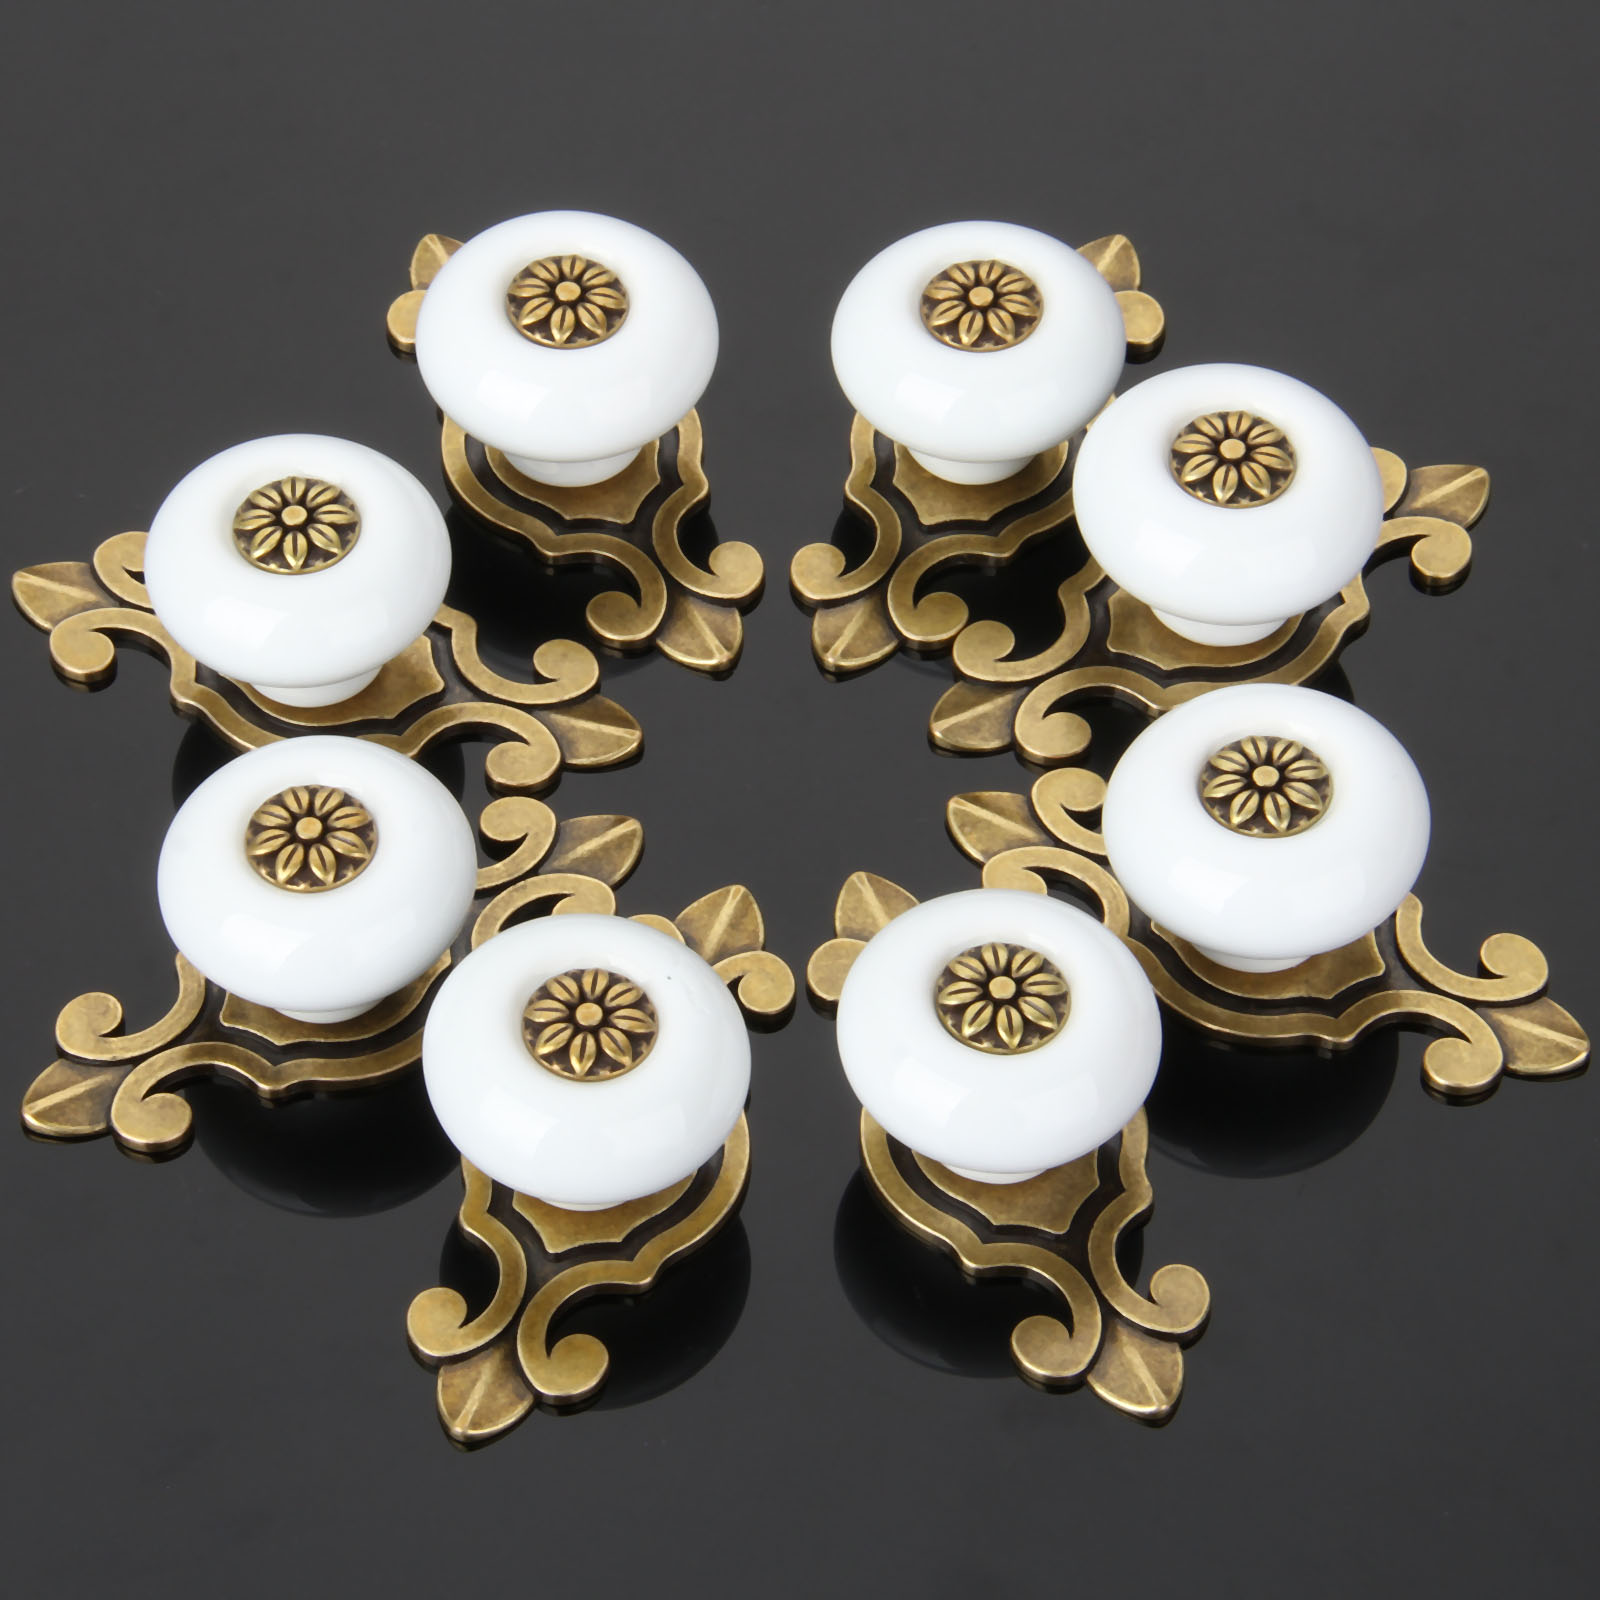 8Pcs Furniture Handle Ceramic Cabinet Knobs and Handles Door Cupboard Drawer Kitchen Pull Handle Furniture Fitting Bronze White 1 pair 96mm vintage furniture cupboard wardrobe handles and knobs antique bronze alloy kitchen cabinet door drawer pull handle